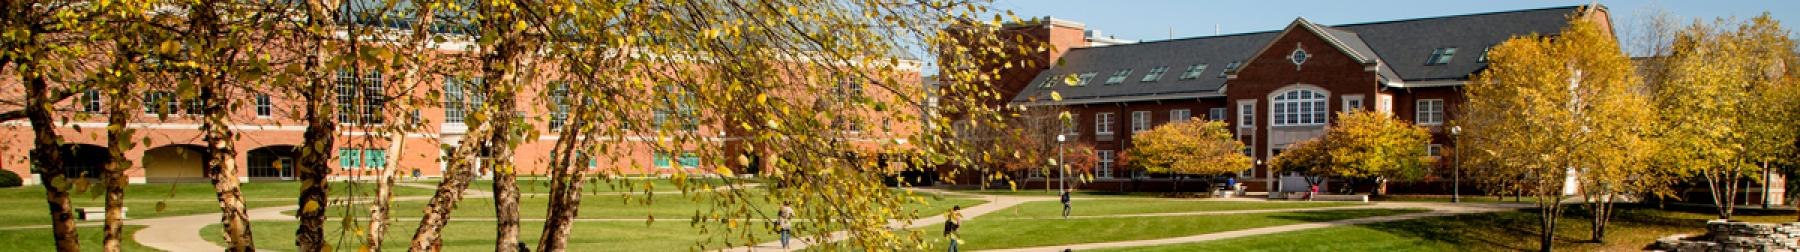 Bardeen Engineering Quad during a beautiful fall day